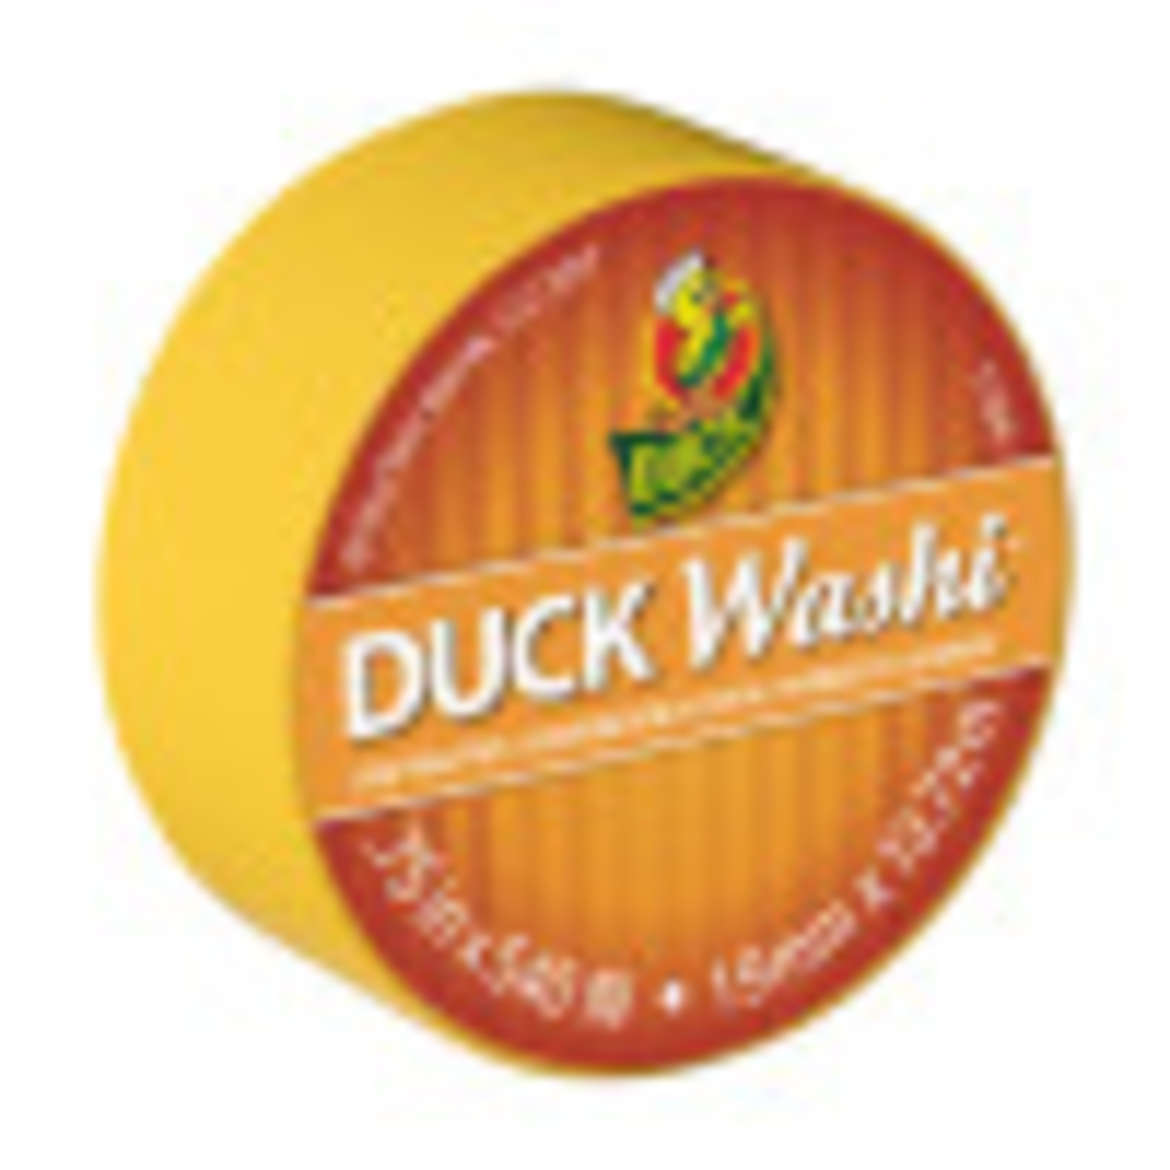 Duck Washi® Crafting Tape - Yellow, 0.75 in. X 15 yd. Image